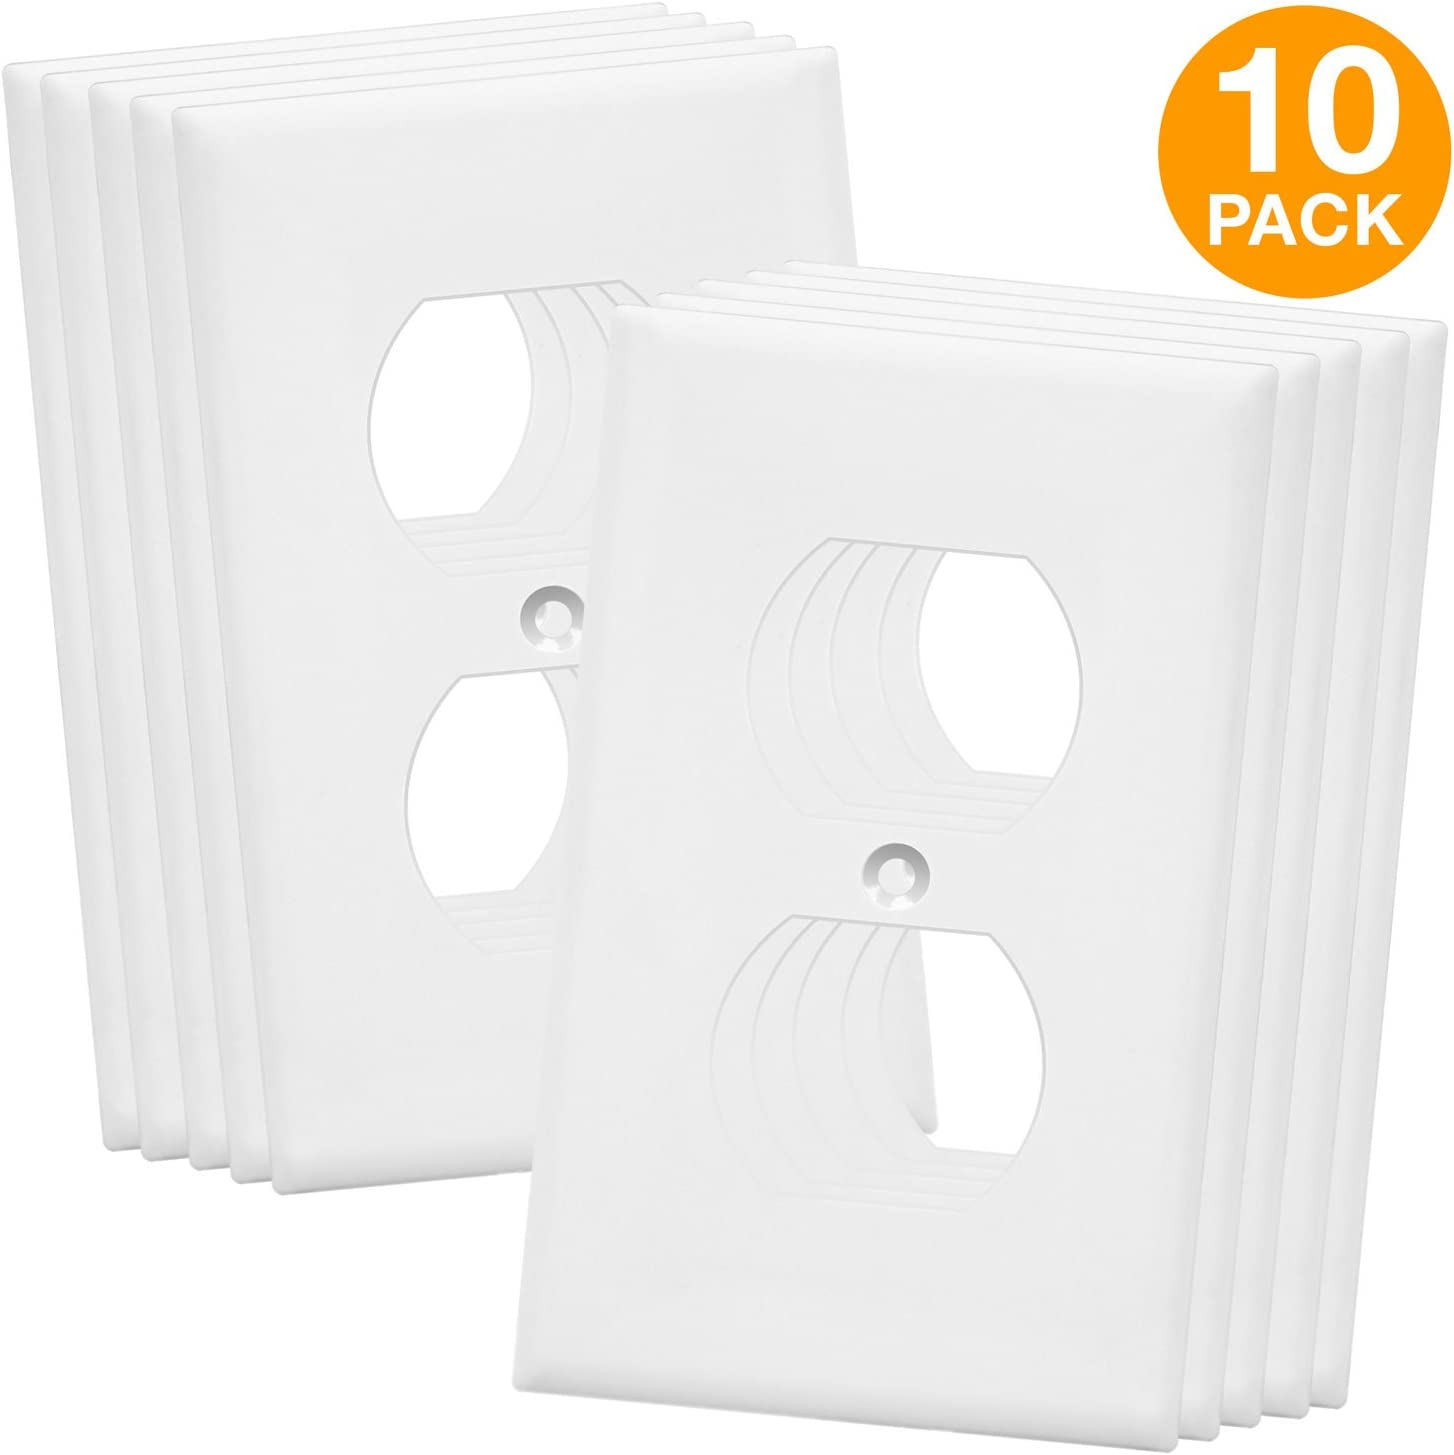 Wall plates  sc 1 st  Amazon.com & Wall Plates | Amazon.com | Electrical - Wall Plates u0026 Accessories